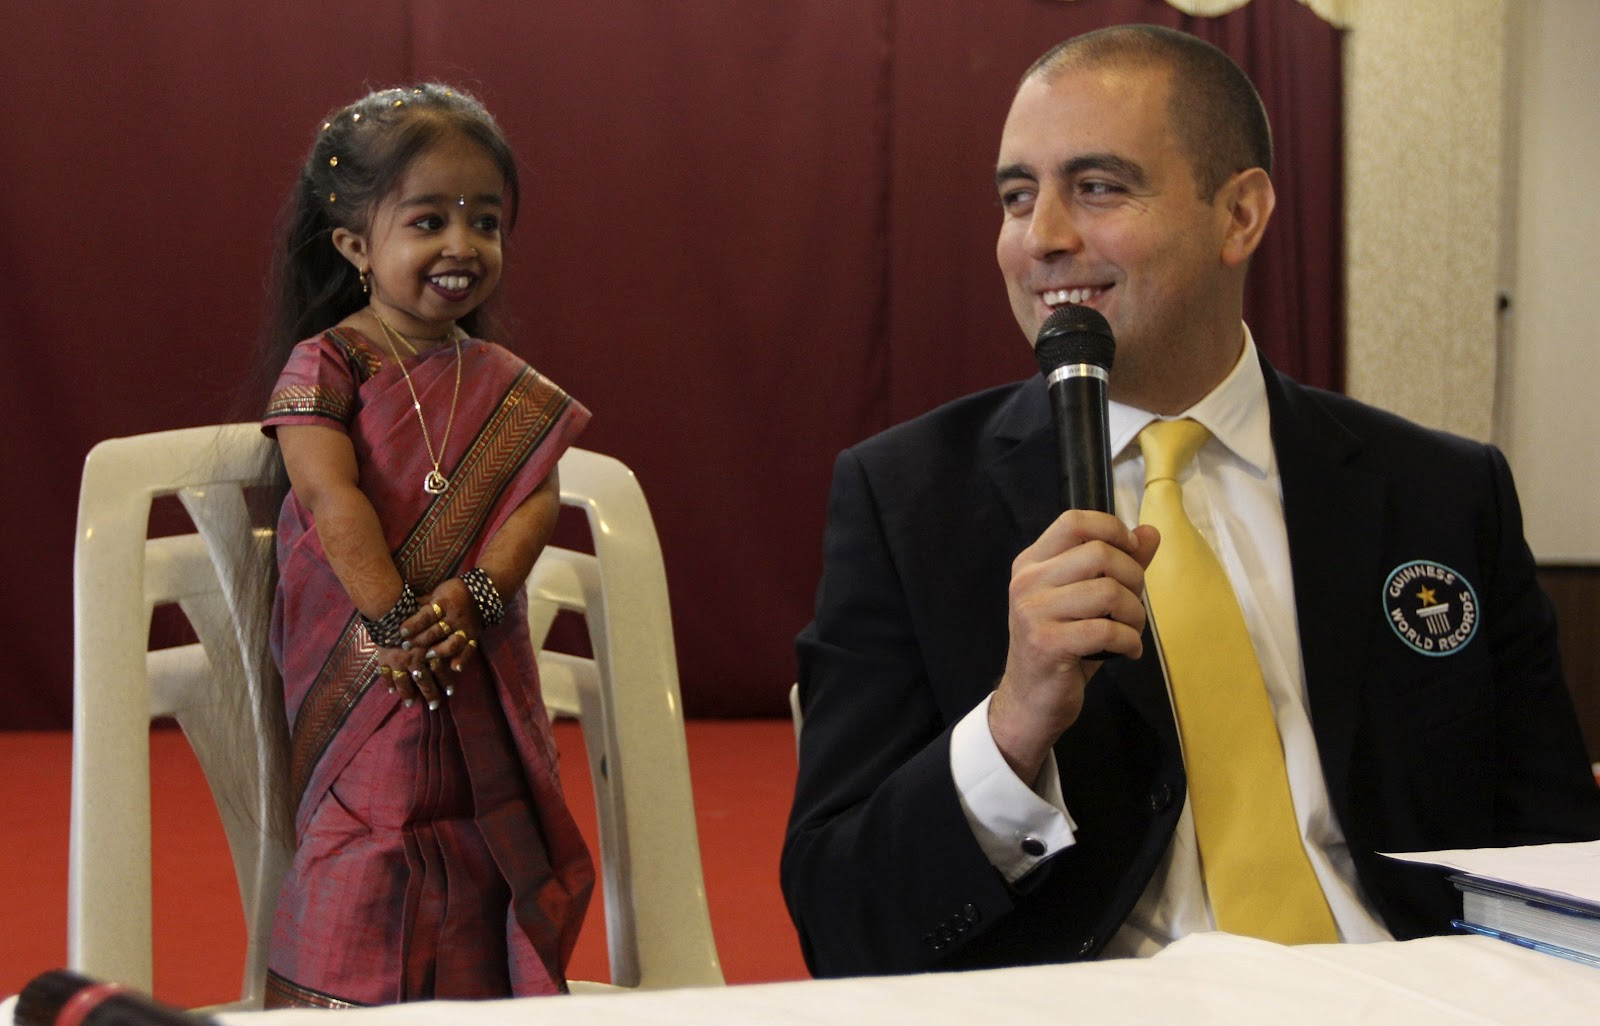 The World   s Shortest Woman 2013The Smallest Person In The World 2013